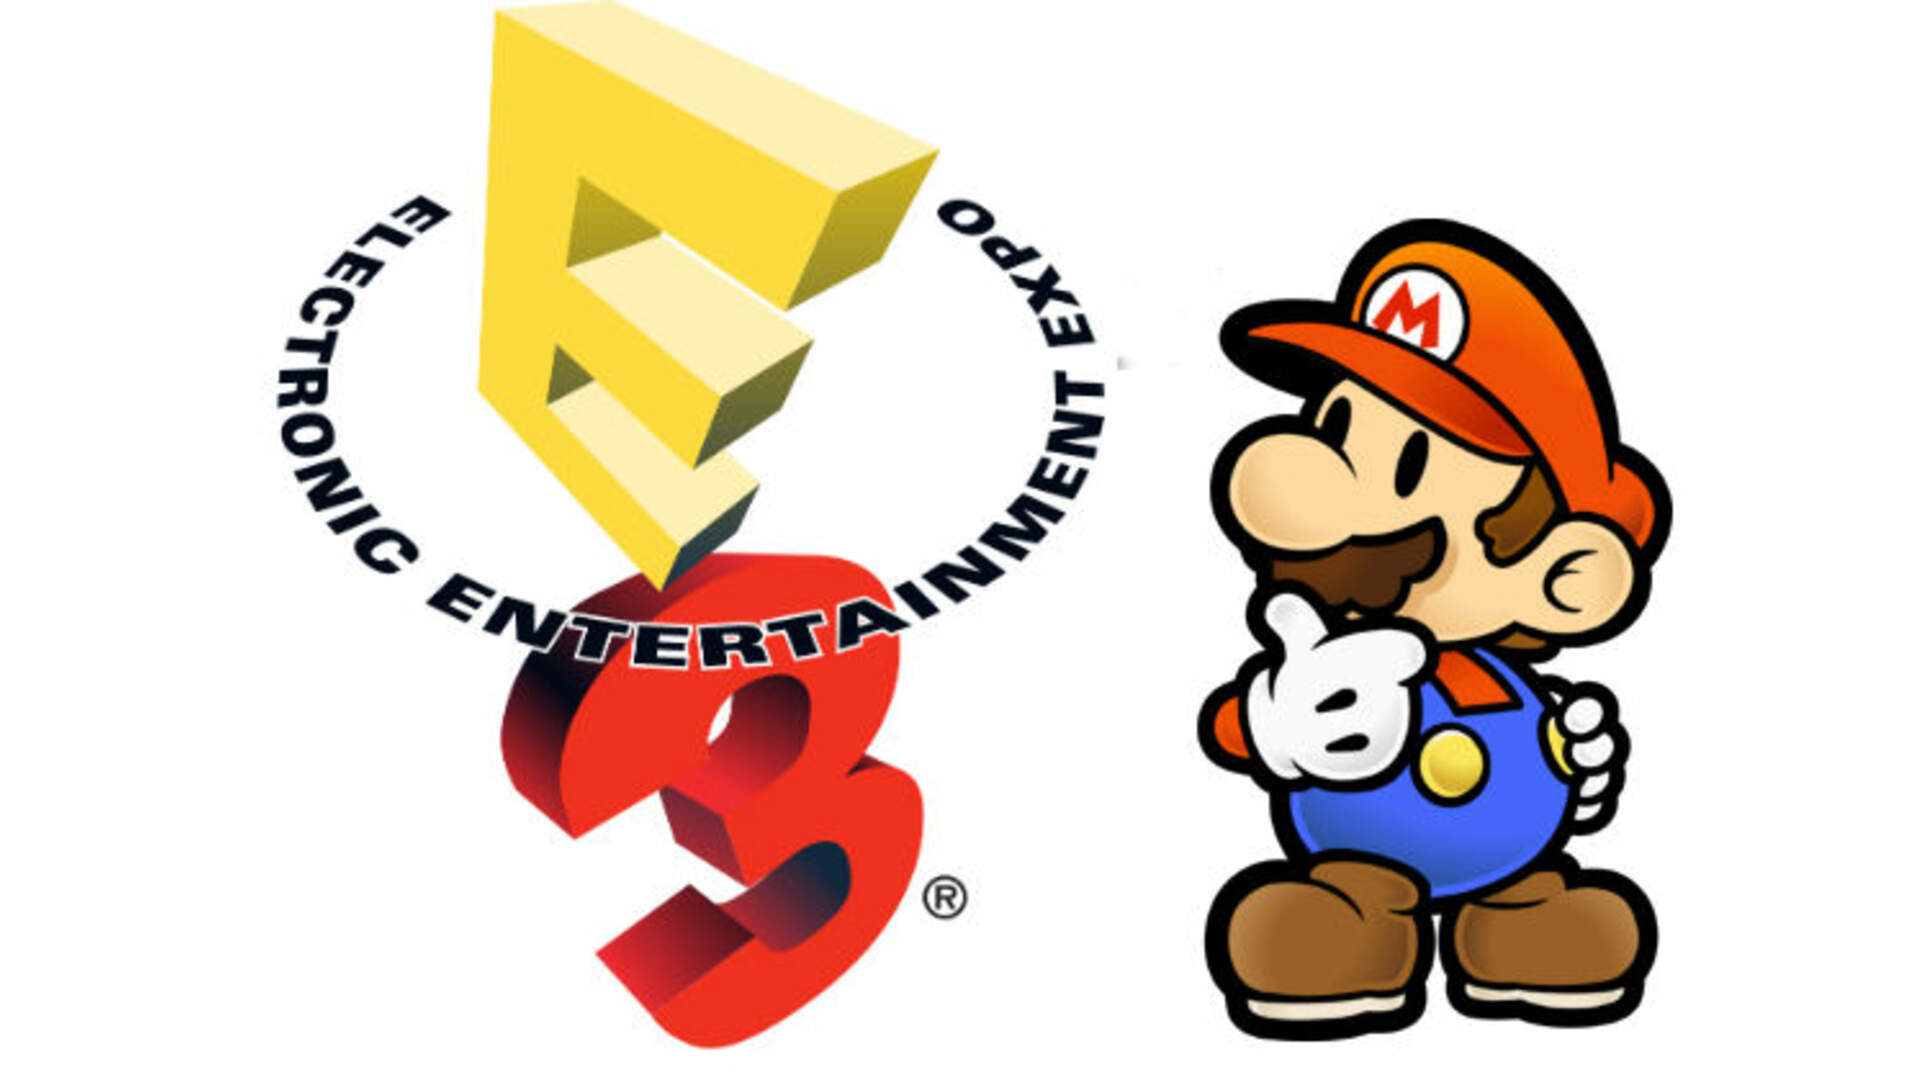 E3: Our Favorite Moments From Past Shows